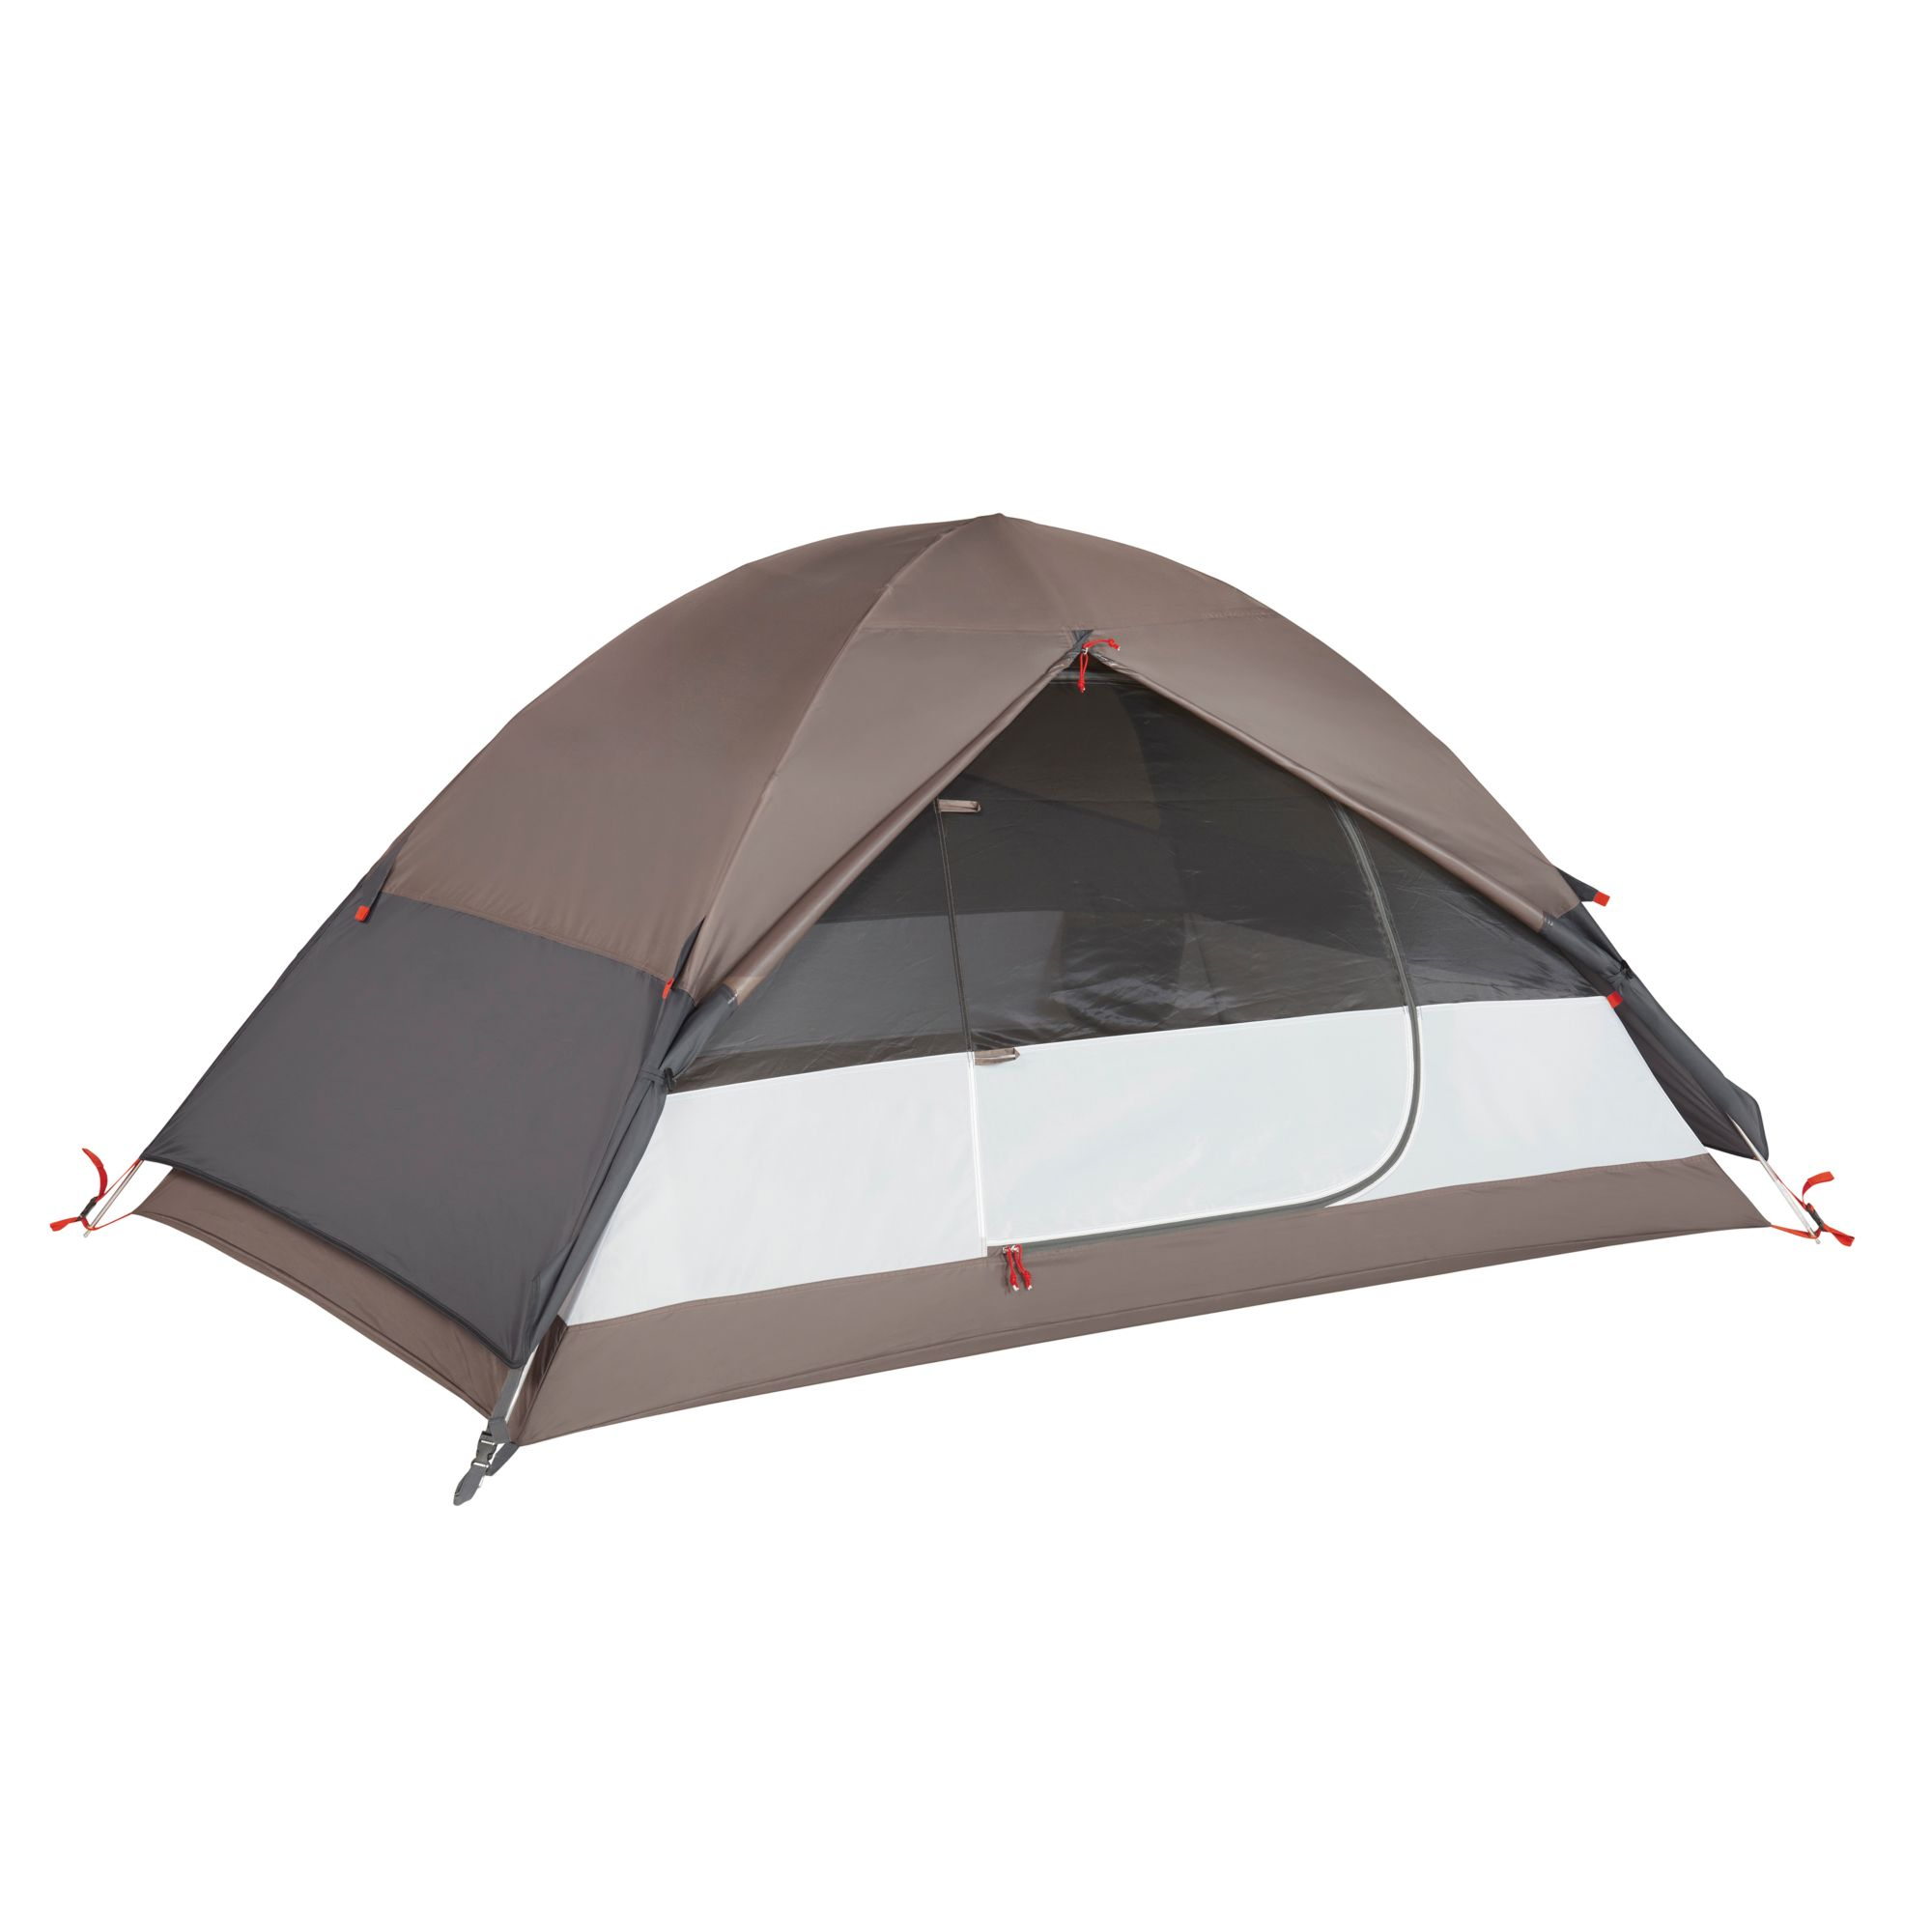 sc 1 st  DICKu0027S Sporting Goods & Kelty Circuit 2 Person Tent | DICKu0027S Sporting Goods